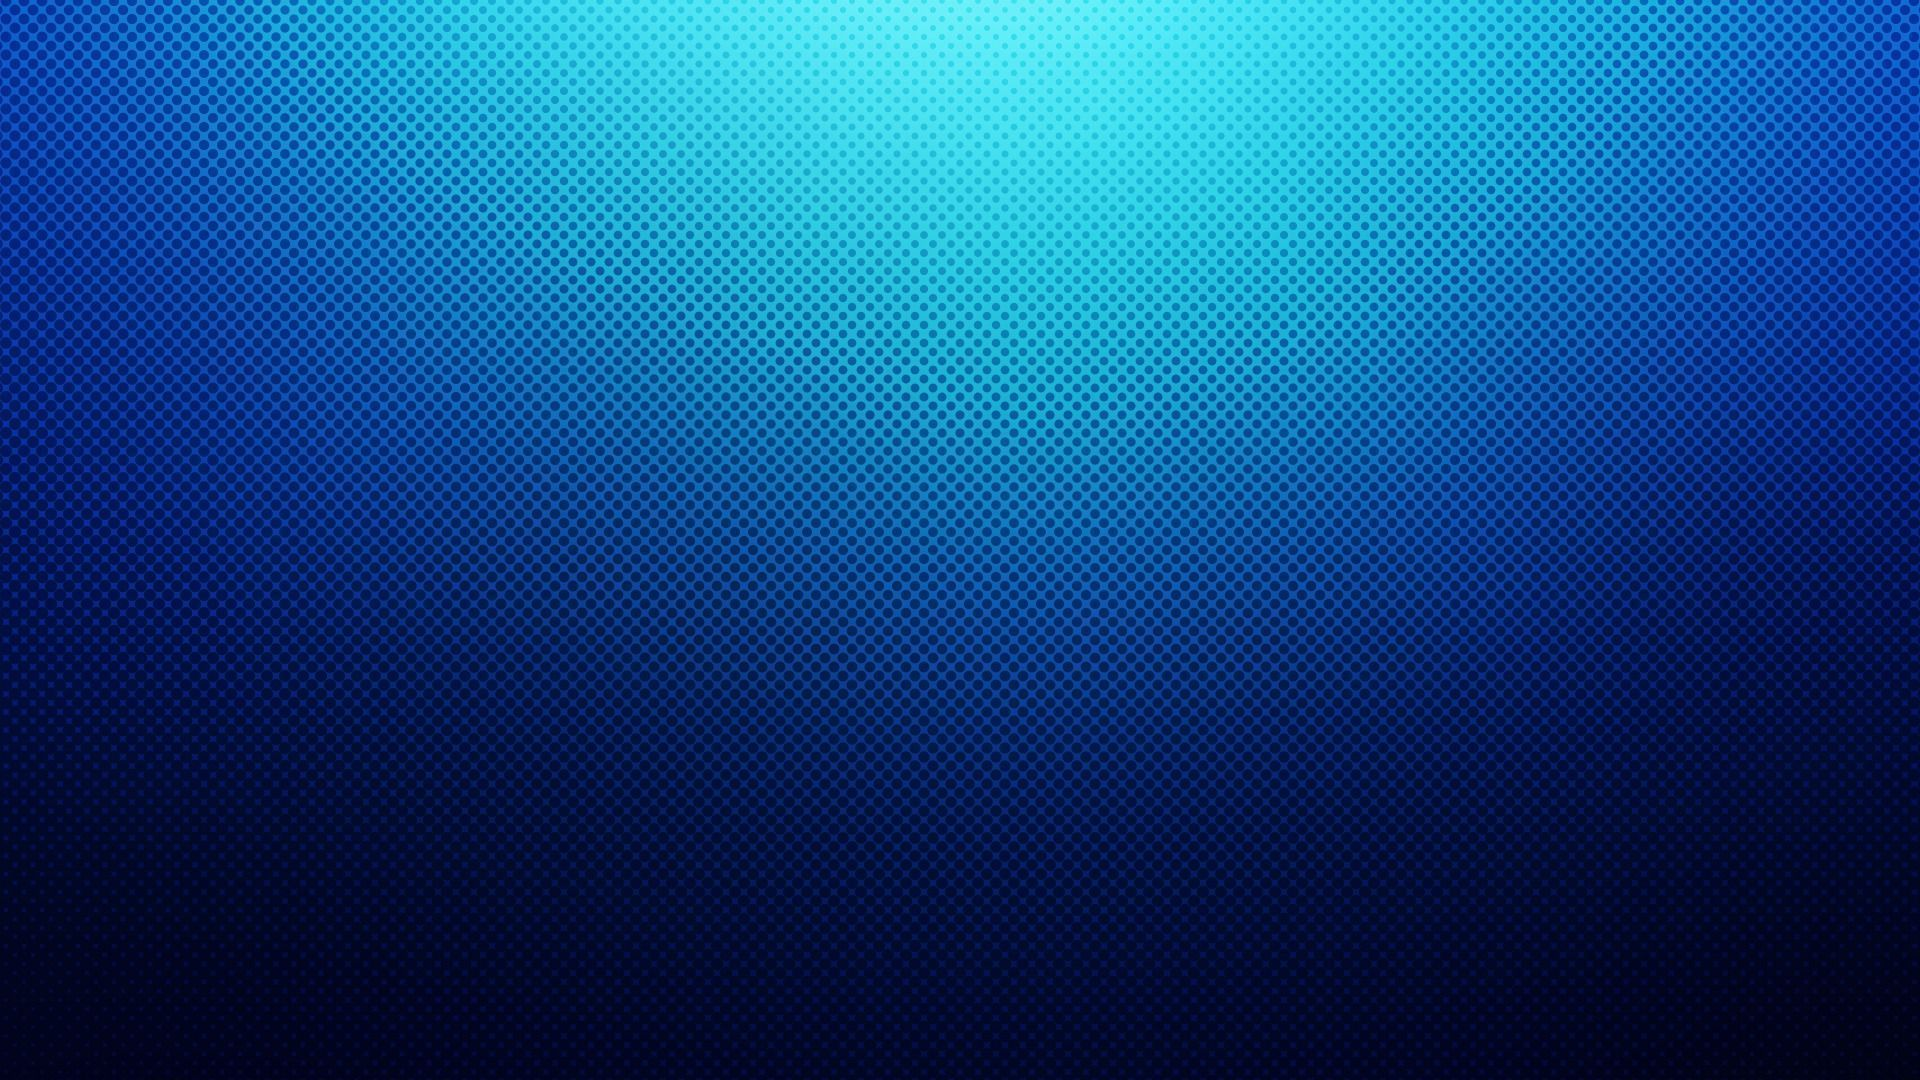 Download Blue Abstract Wallpaper Wide For Free Wallpaper Monodomo In 2020 Abstract Wallpaper Cool Backgrounds Blue Wallpapers